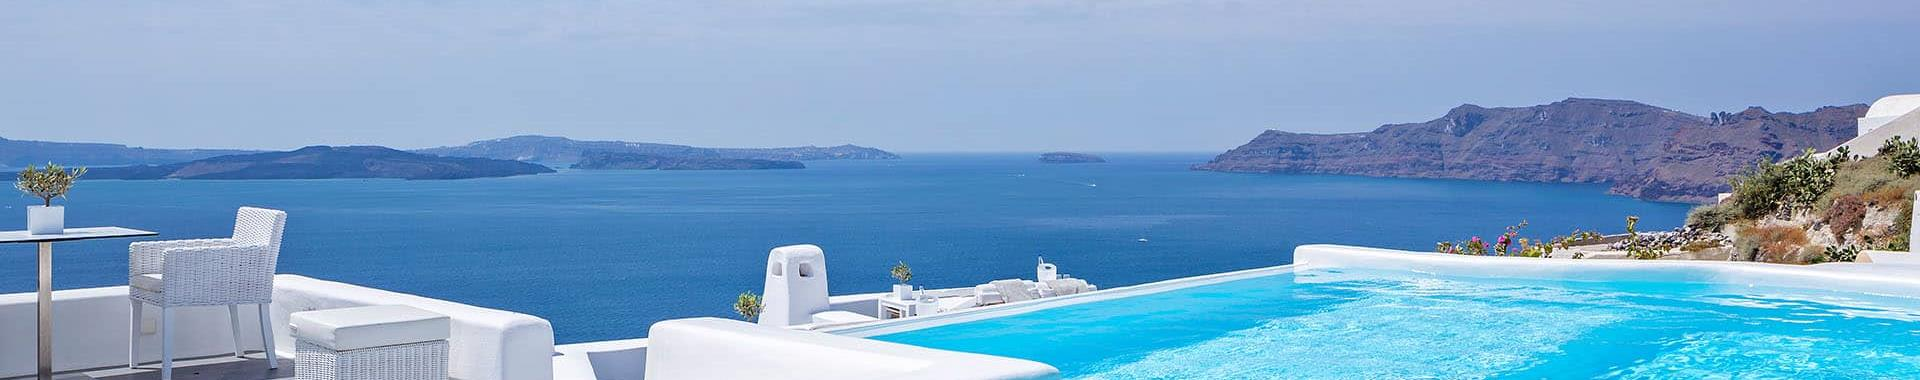 Kamari or Perivolos Santorini Hotels with Infinity Pool